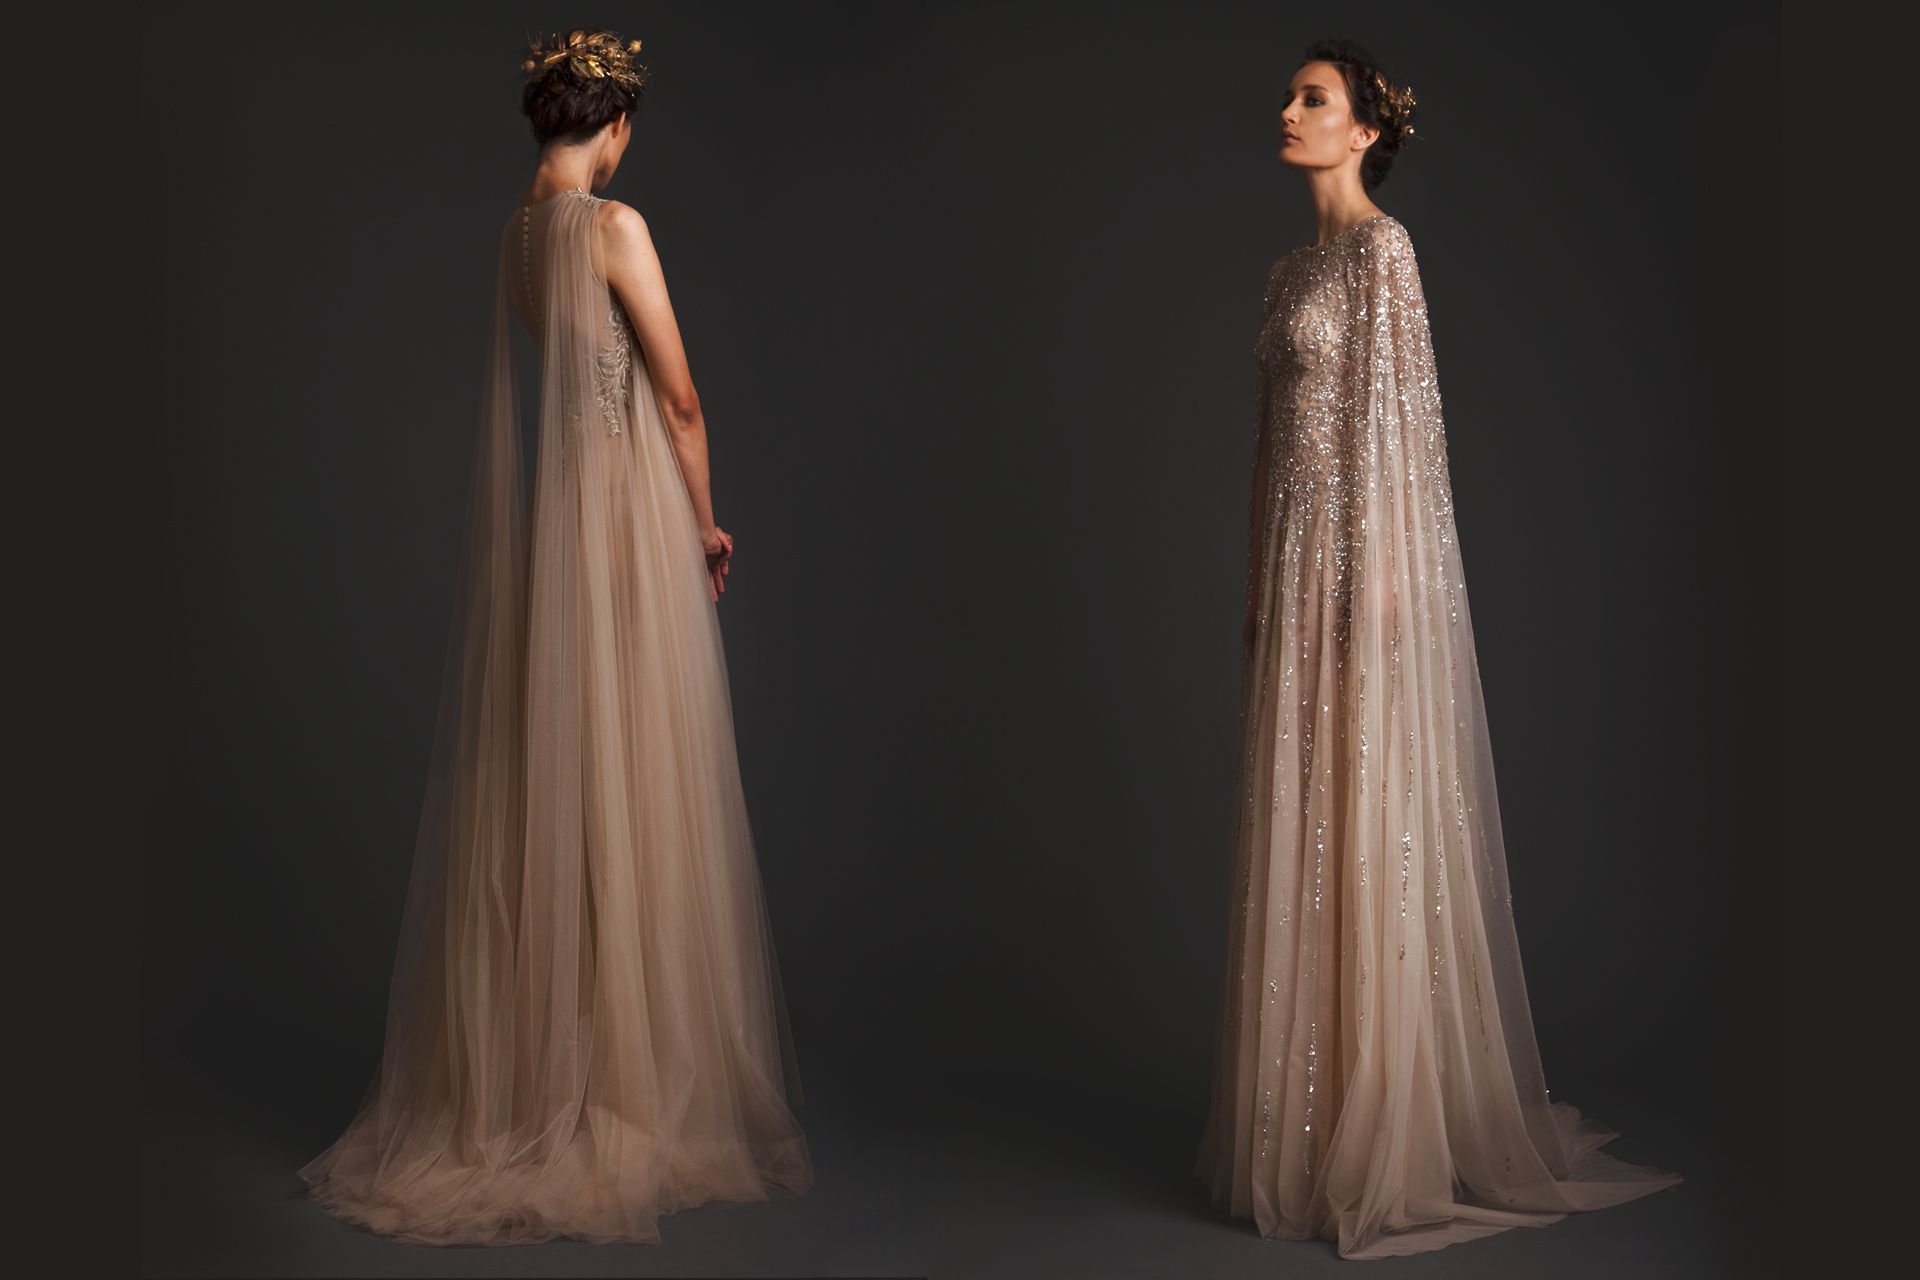 Beautifully Crafted Gowns - Krikor Jabotian Ethereal, Fantasy And Drama